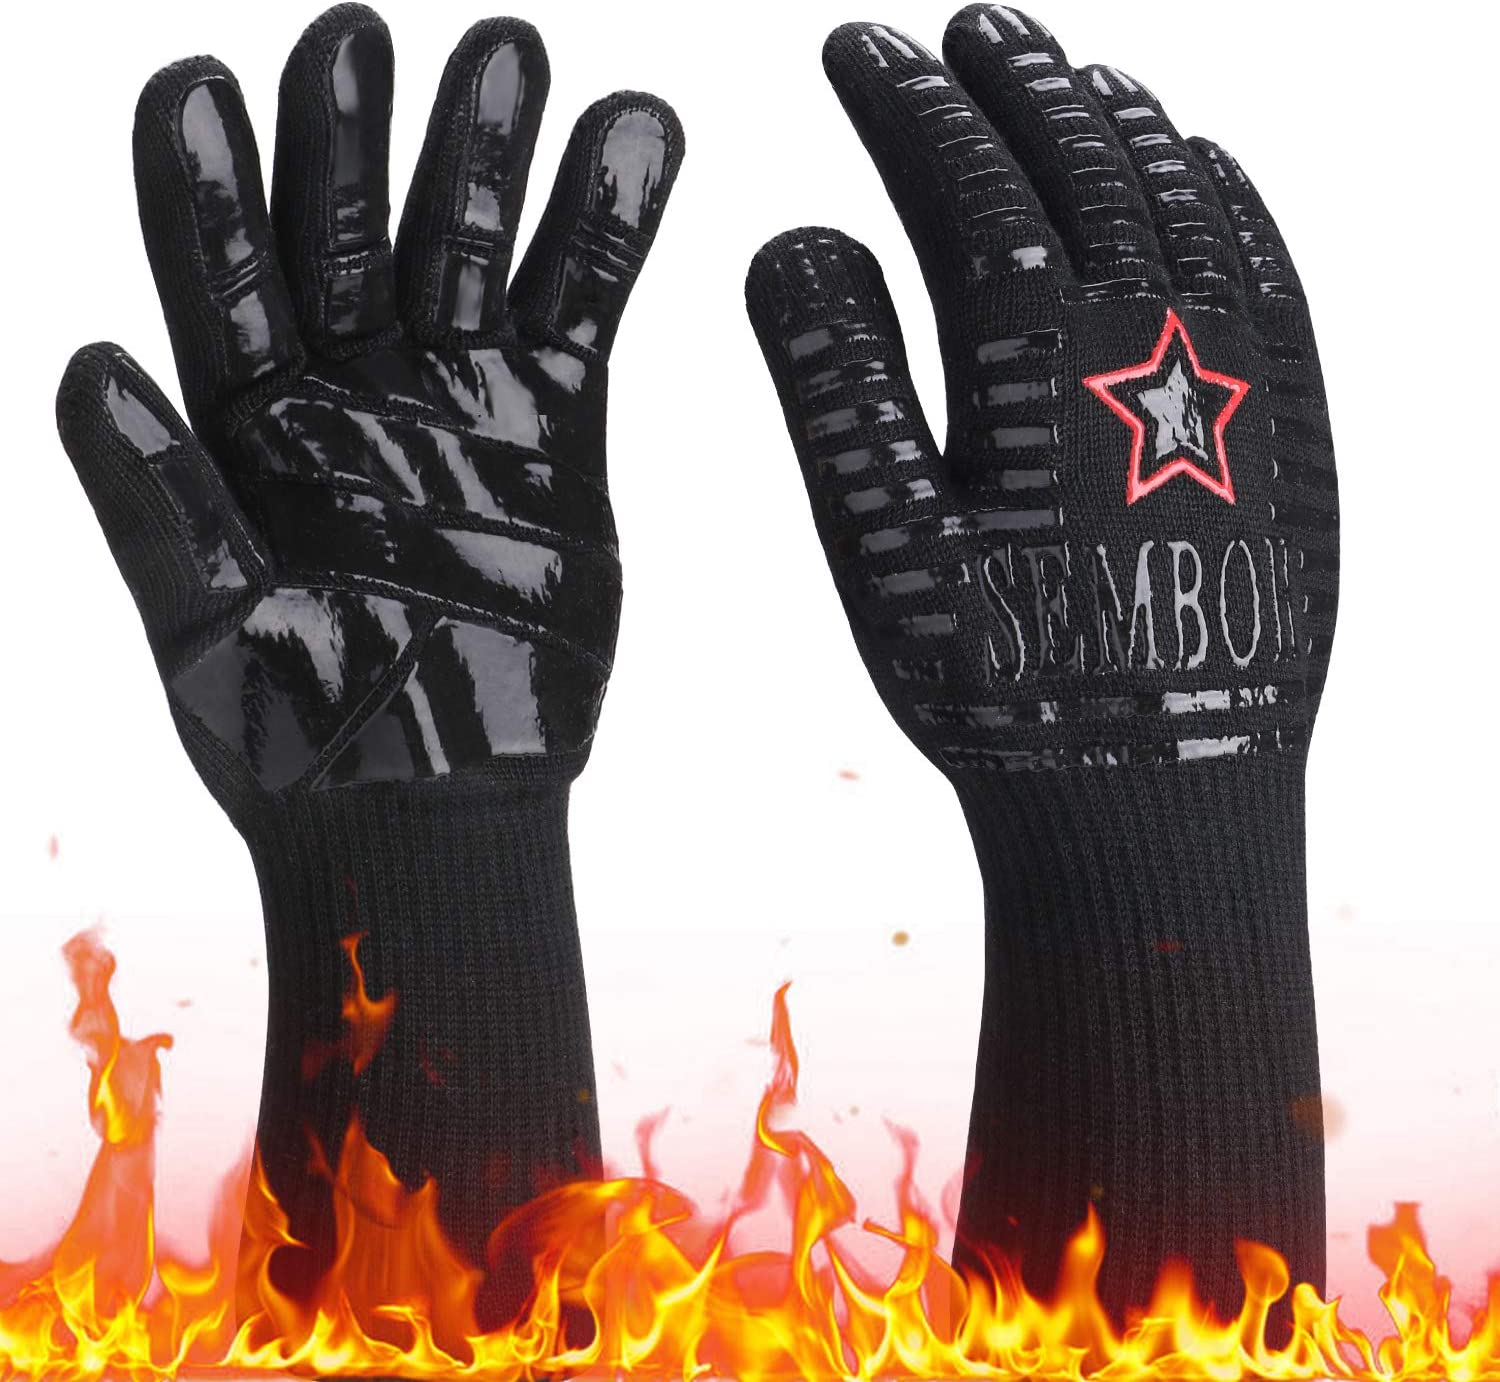 932℉ Extreme Heat Resistant Gloves, Silicone Oven Mitts for Kitchen - High Heat BBQ Gloves for Grilling, Large Oven Gloves for Men, Long Grill Gloves for Cooking, Black Protective Grilling Mitts